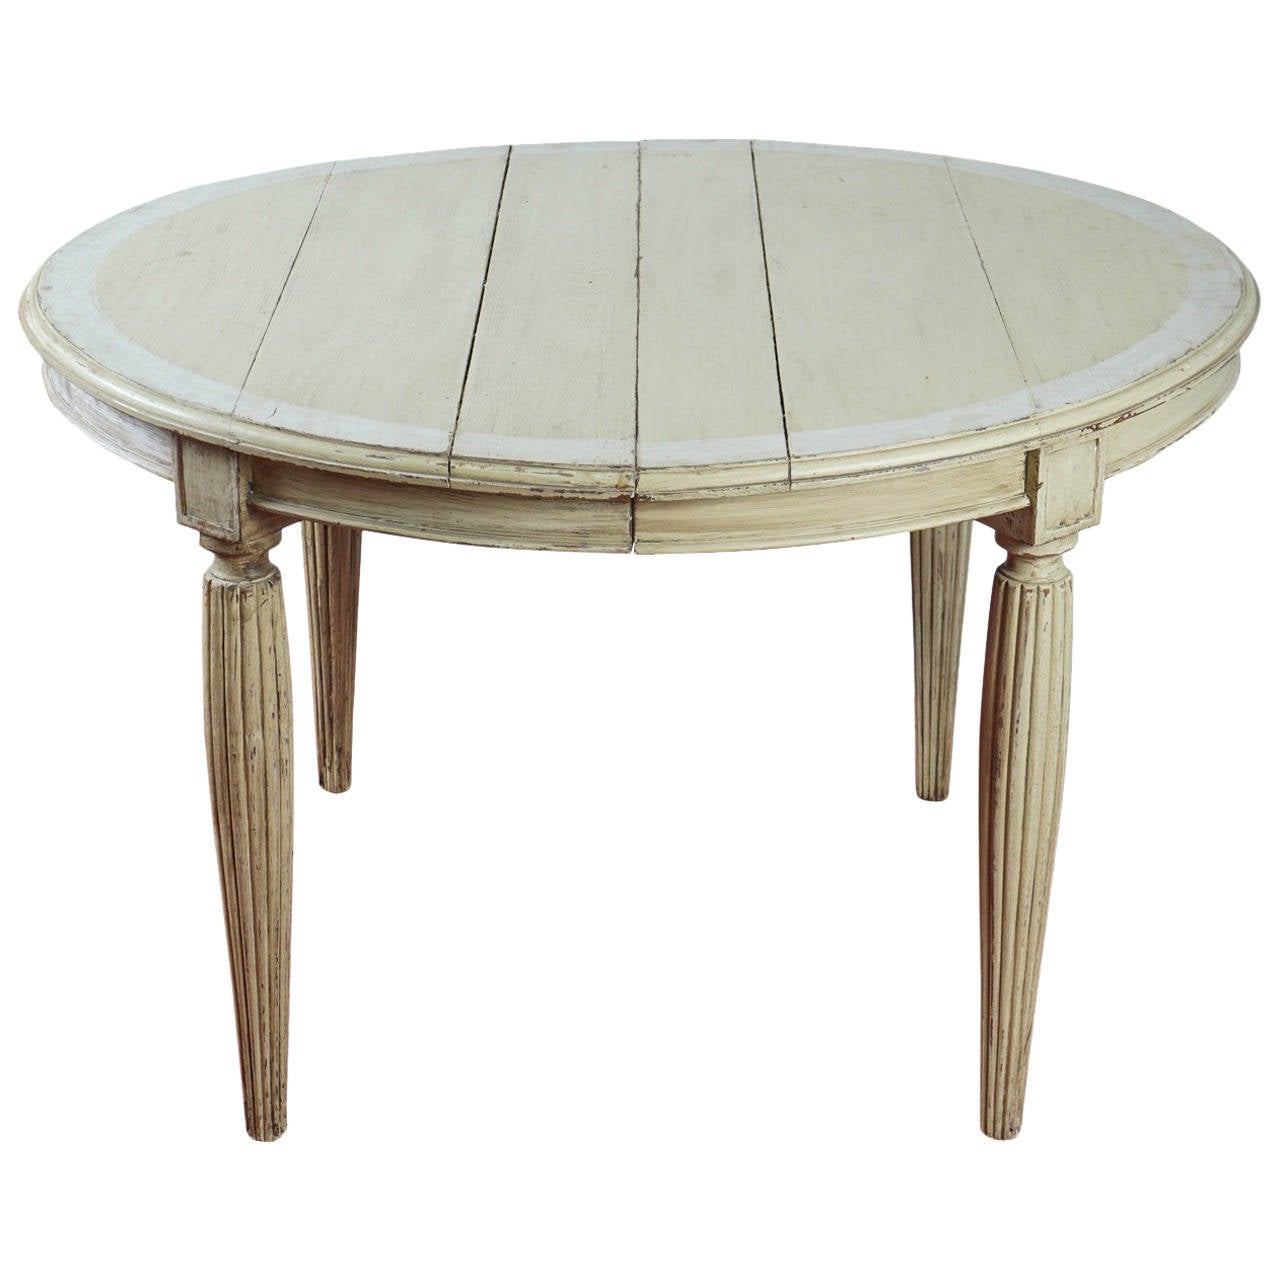 Oval Dining Room Table: Antique Swedish Oval Dining Table For Sale At 1stdibs